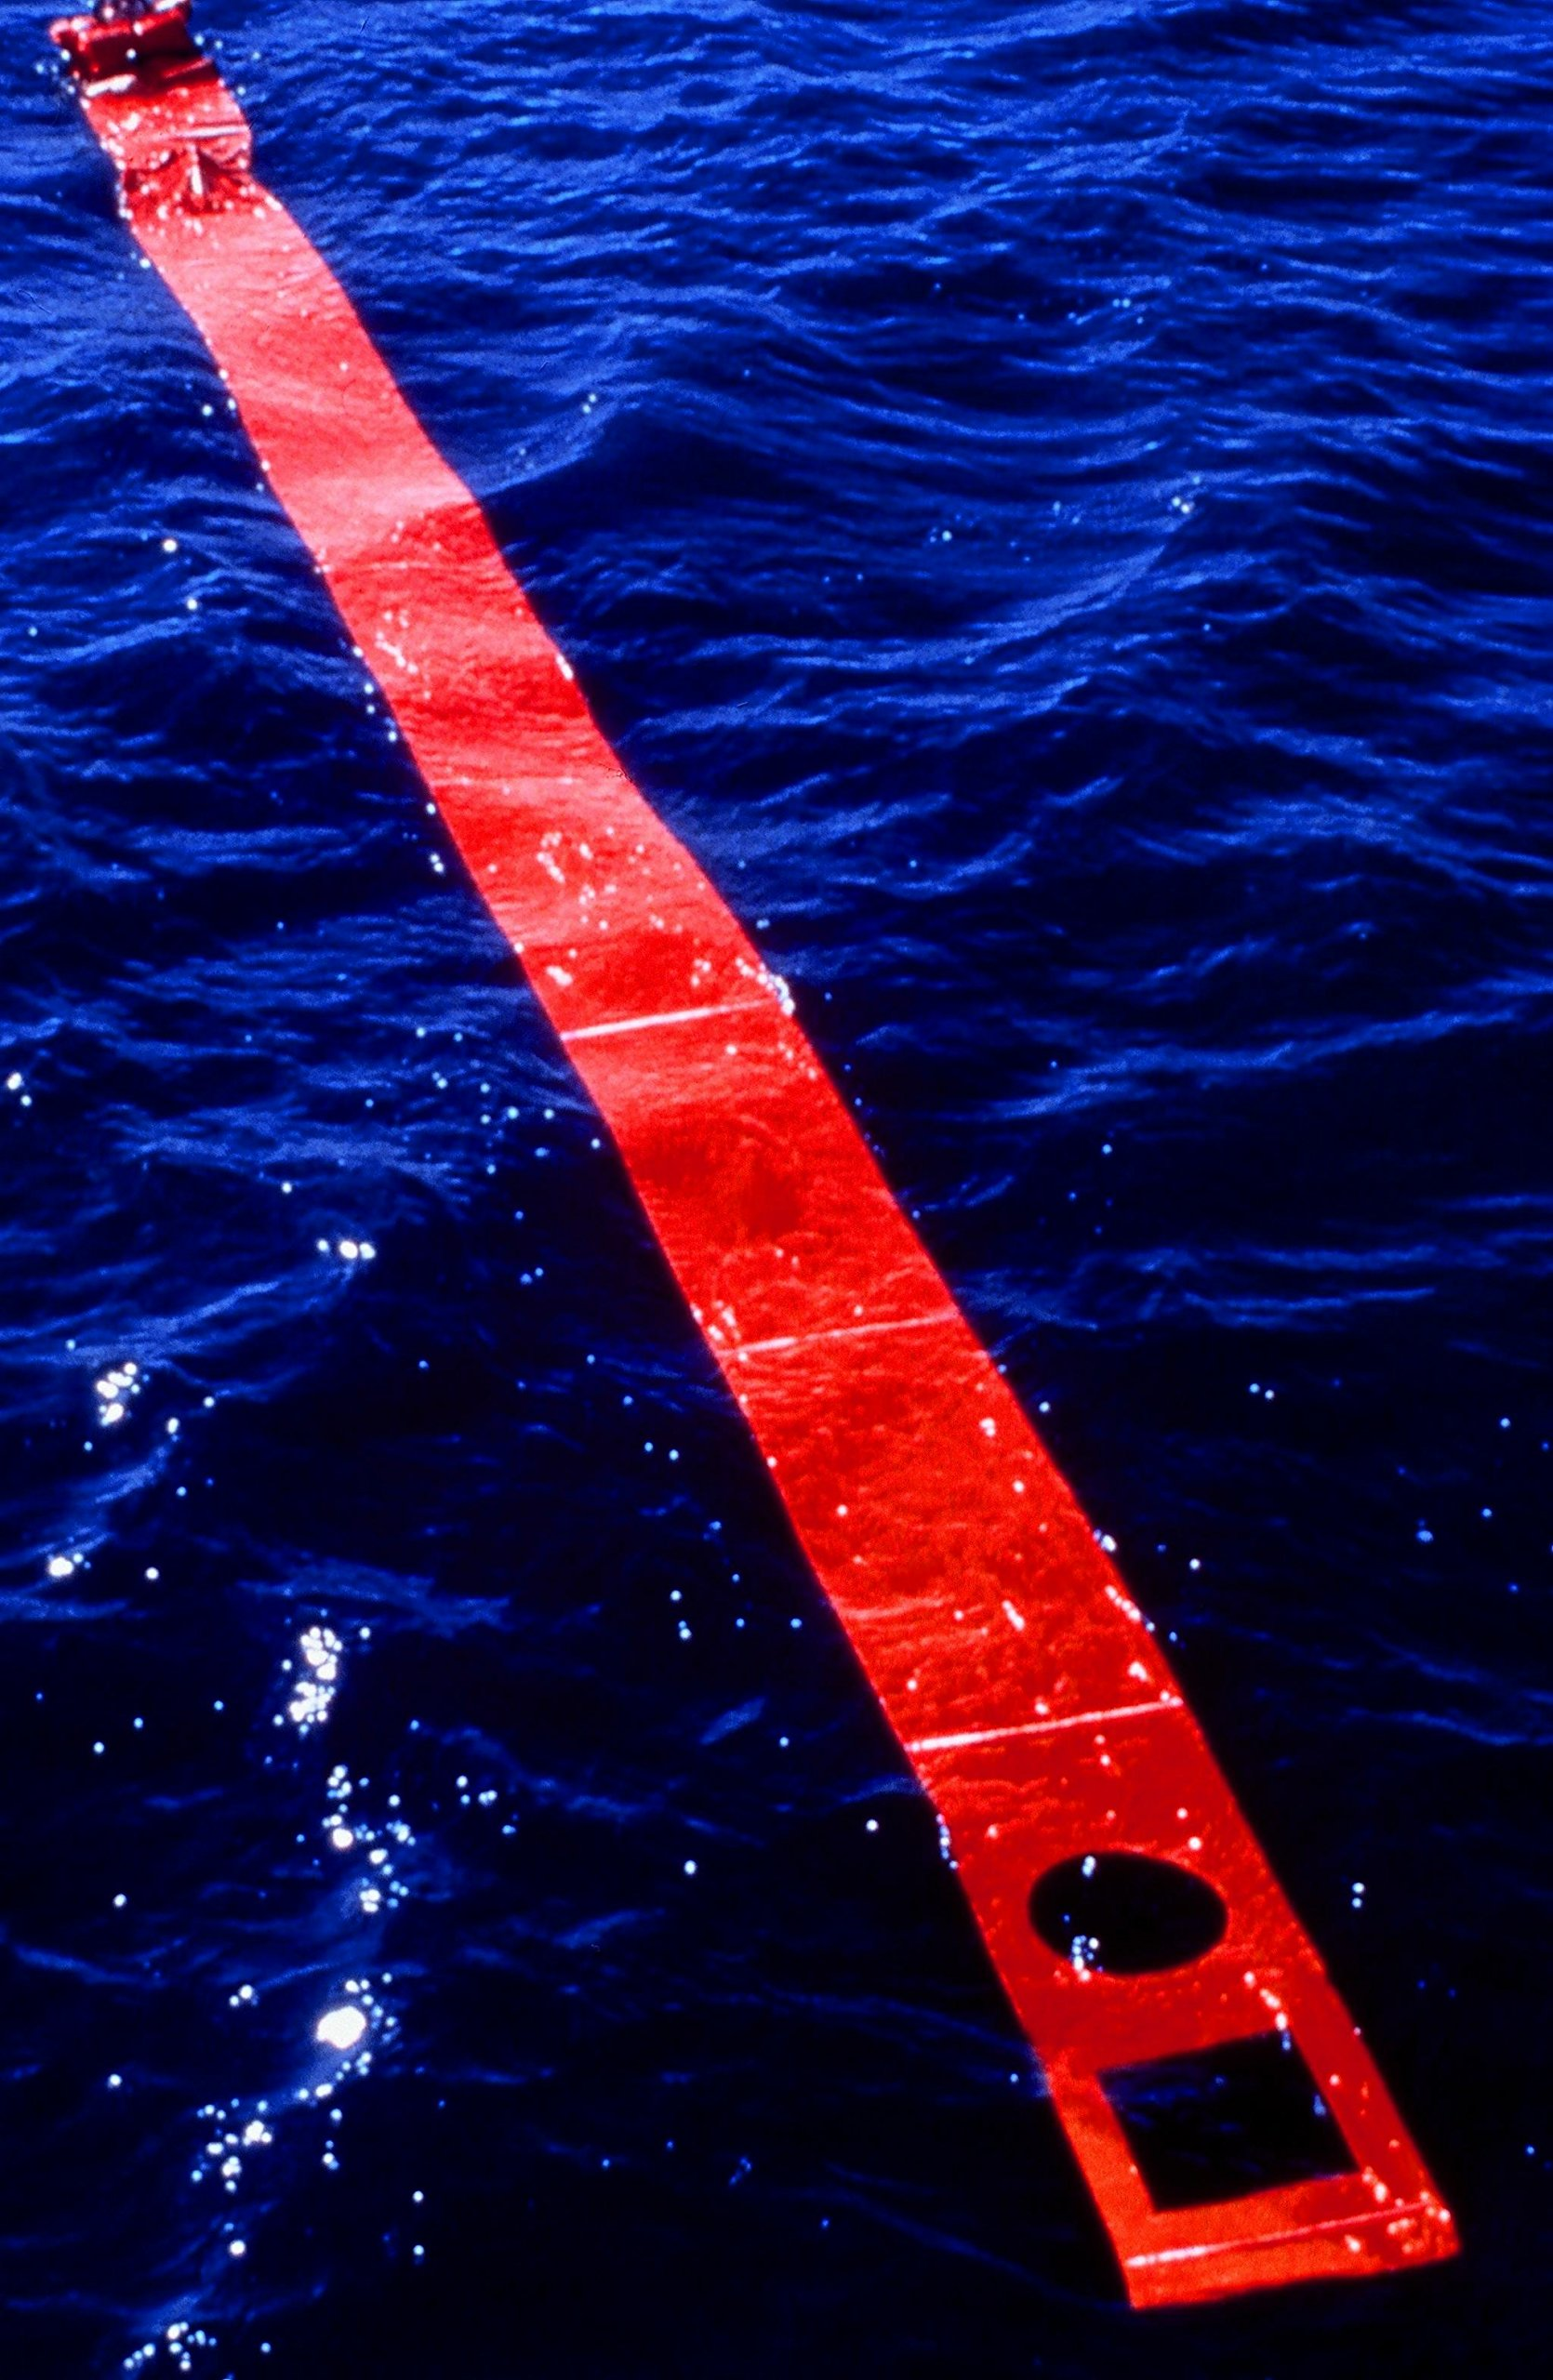 See/Rescue Streamer, Lighted Safety and Rescue Device for Any Terrain - Large by See/Rescue (Image #6)